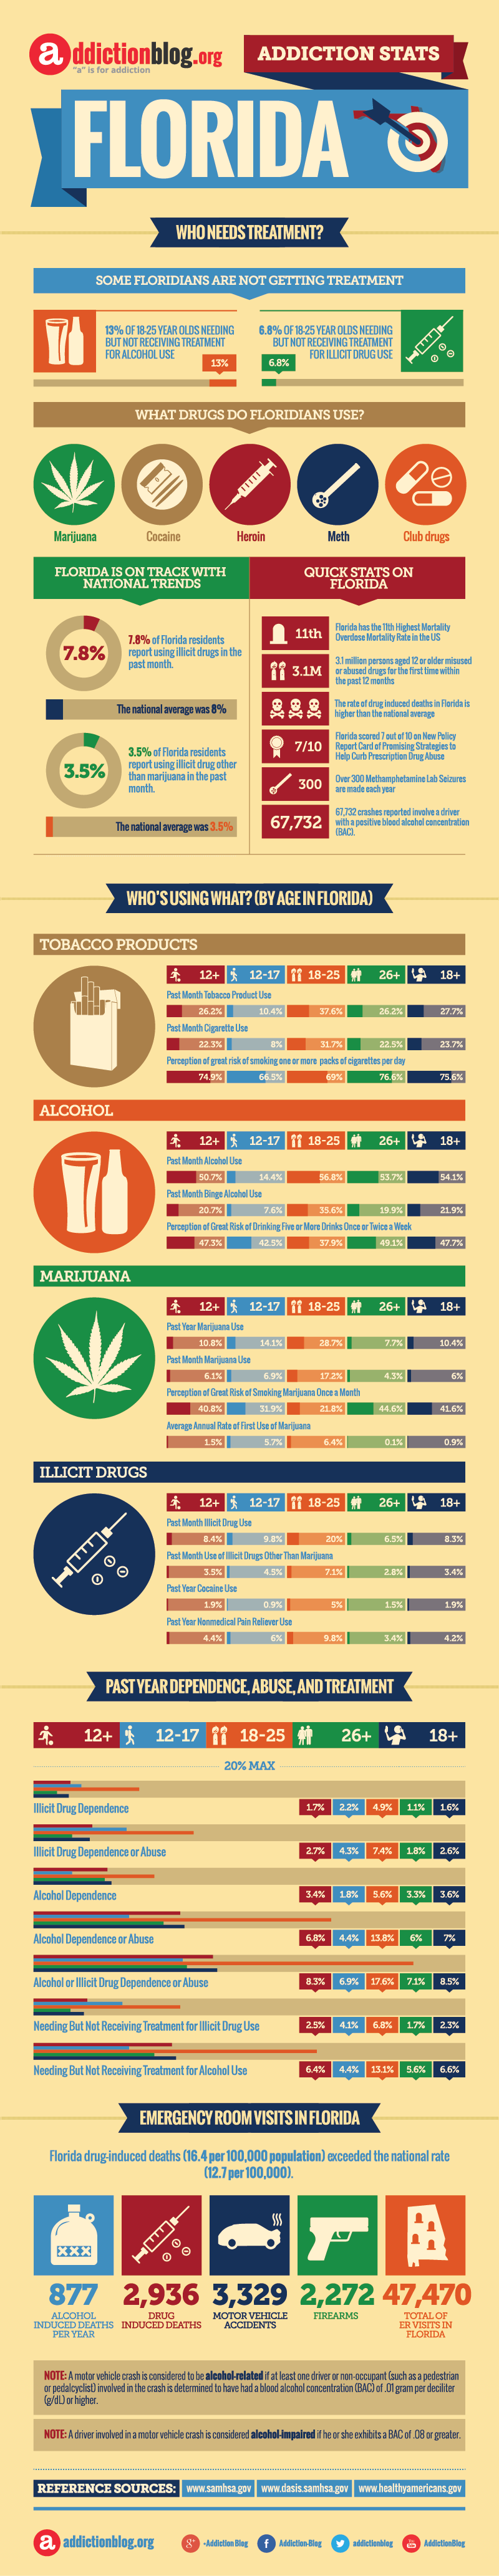 Who needs substance abuse treatment in Florida? (INFOGRAPHIC)